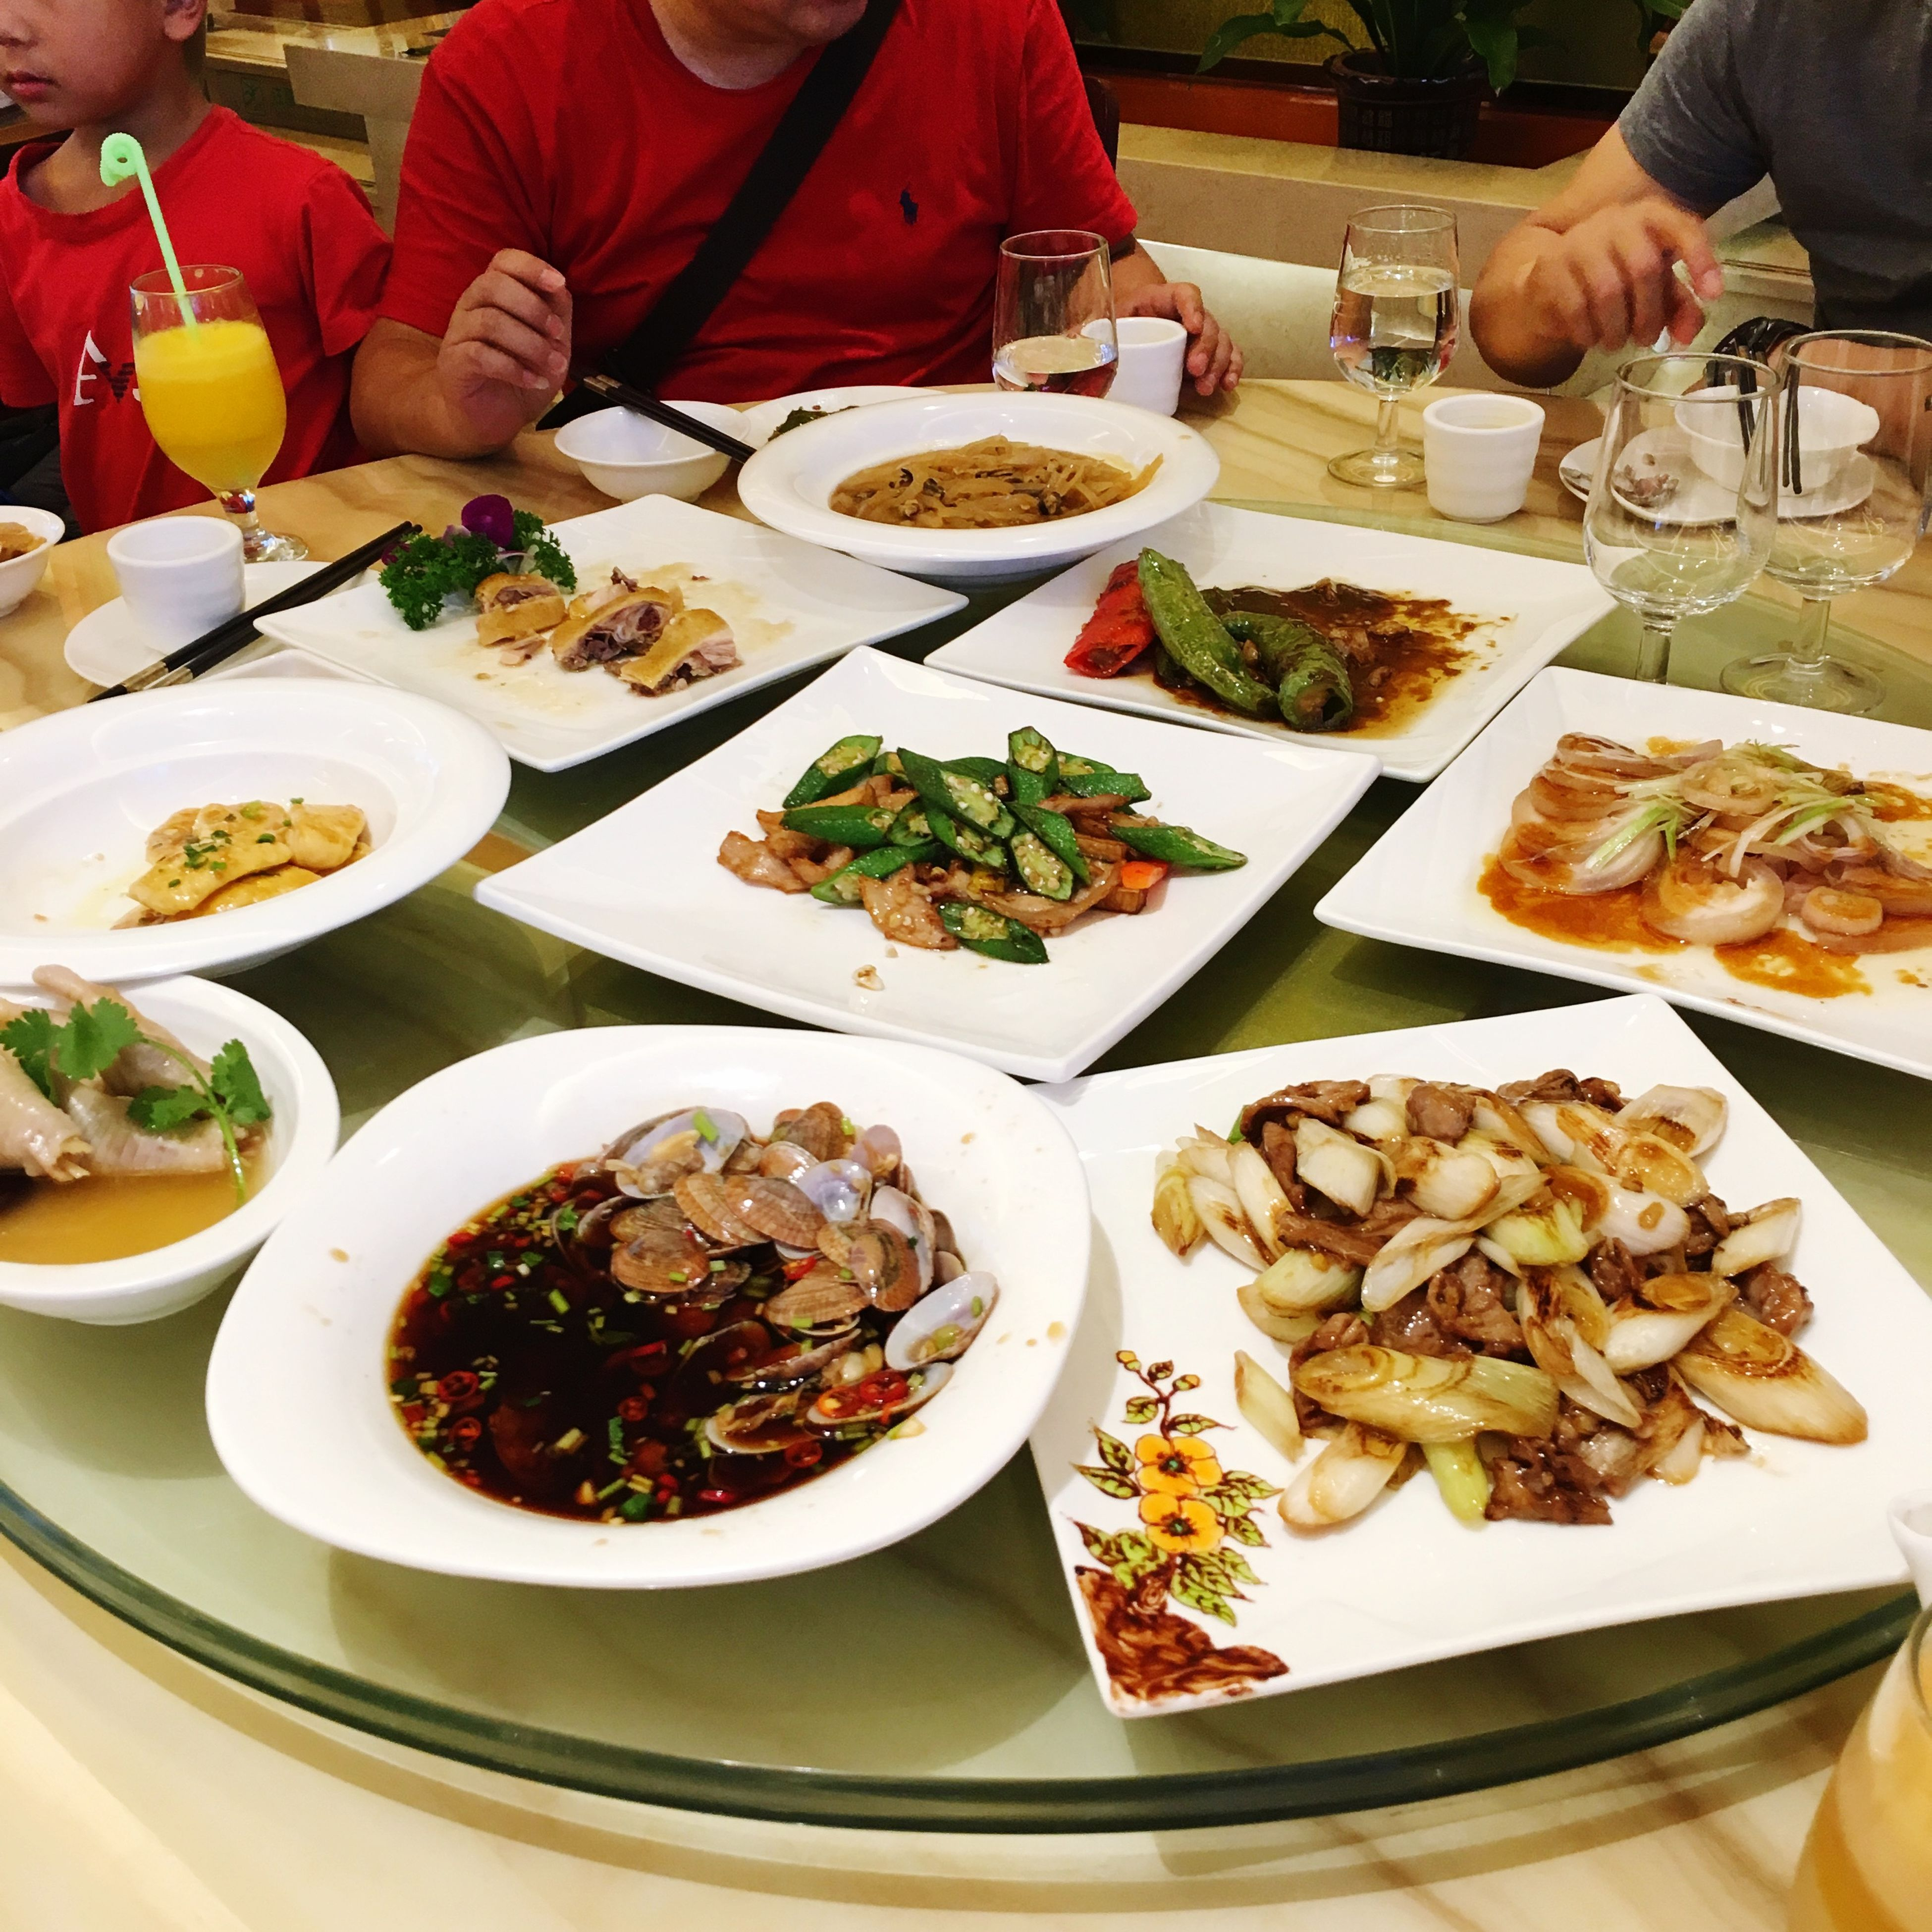 food and drink, food, freshness, person, plate, table, ready-to-eat, indoors, healthy eating, lifestyles, men, holding, meal, restaurant, bowl, meat, leisure activity, vegetable